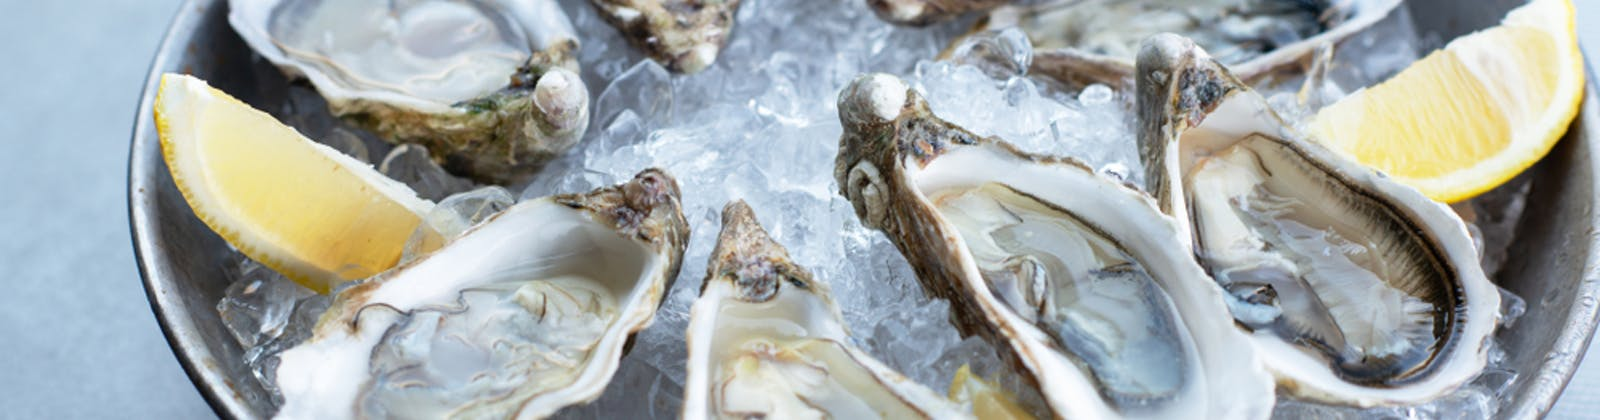 Oysters being served in Auckland restaurant